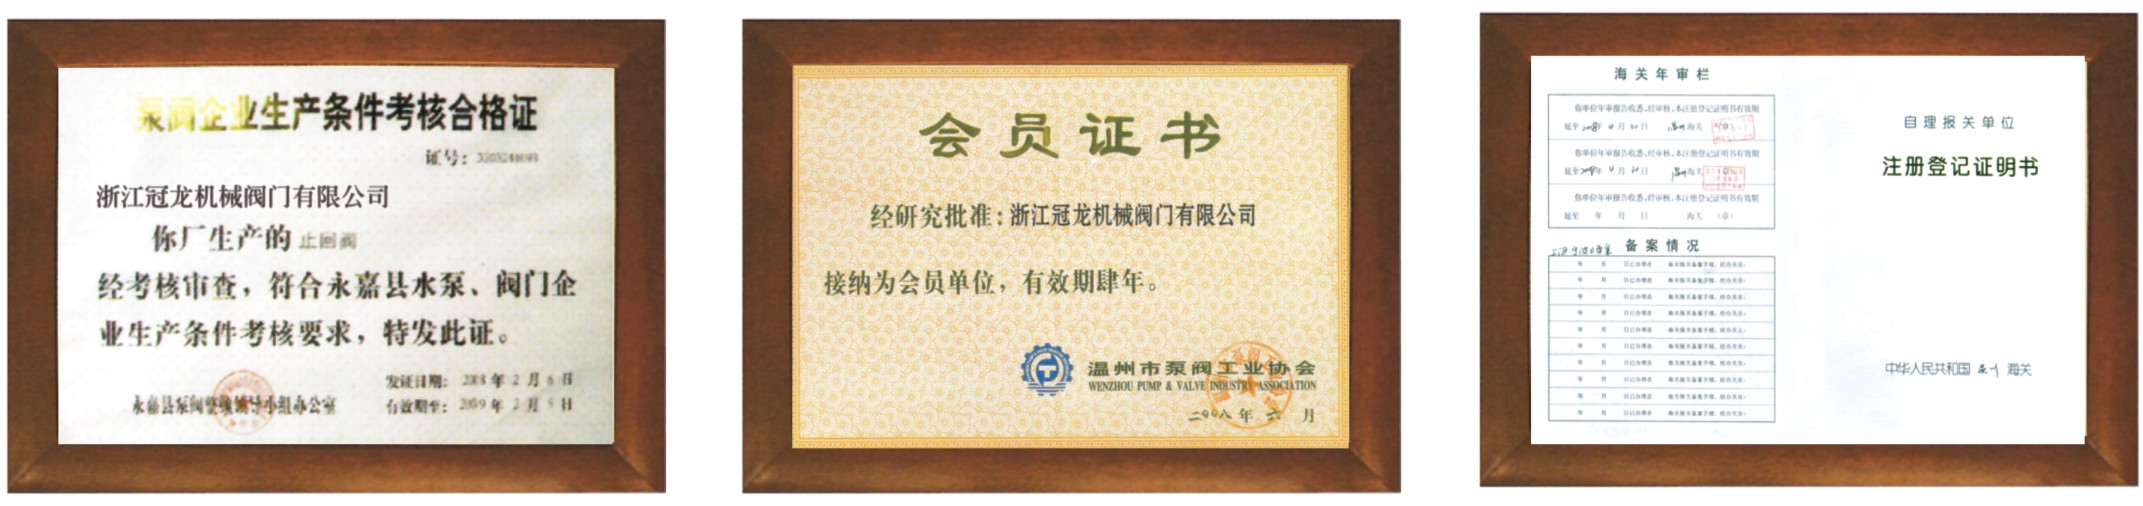 industry membership license & manufacturing field qualification license